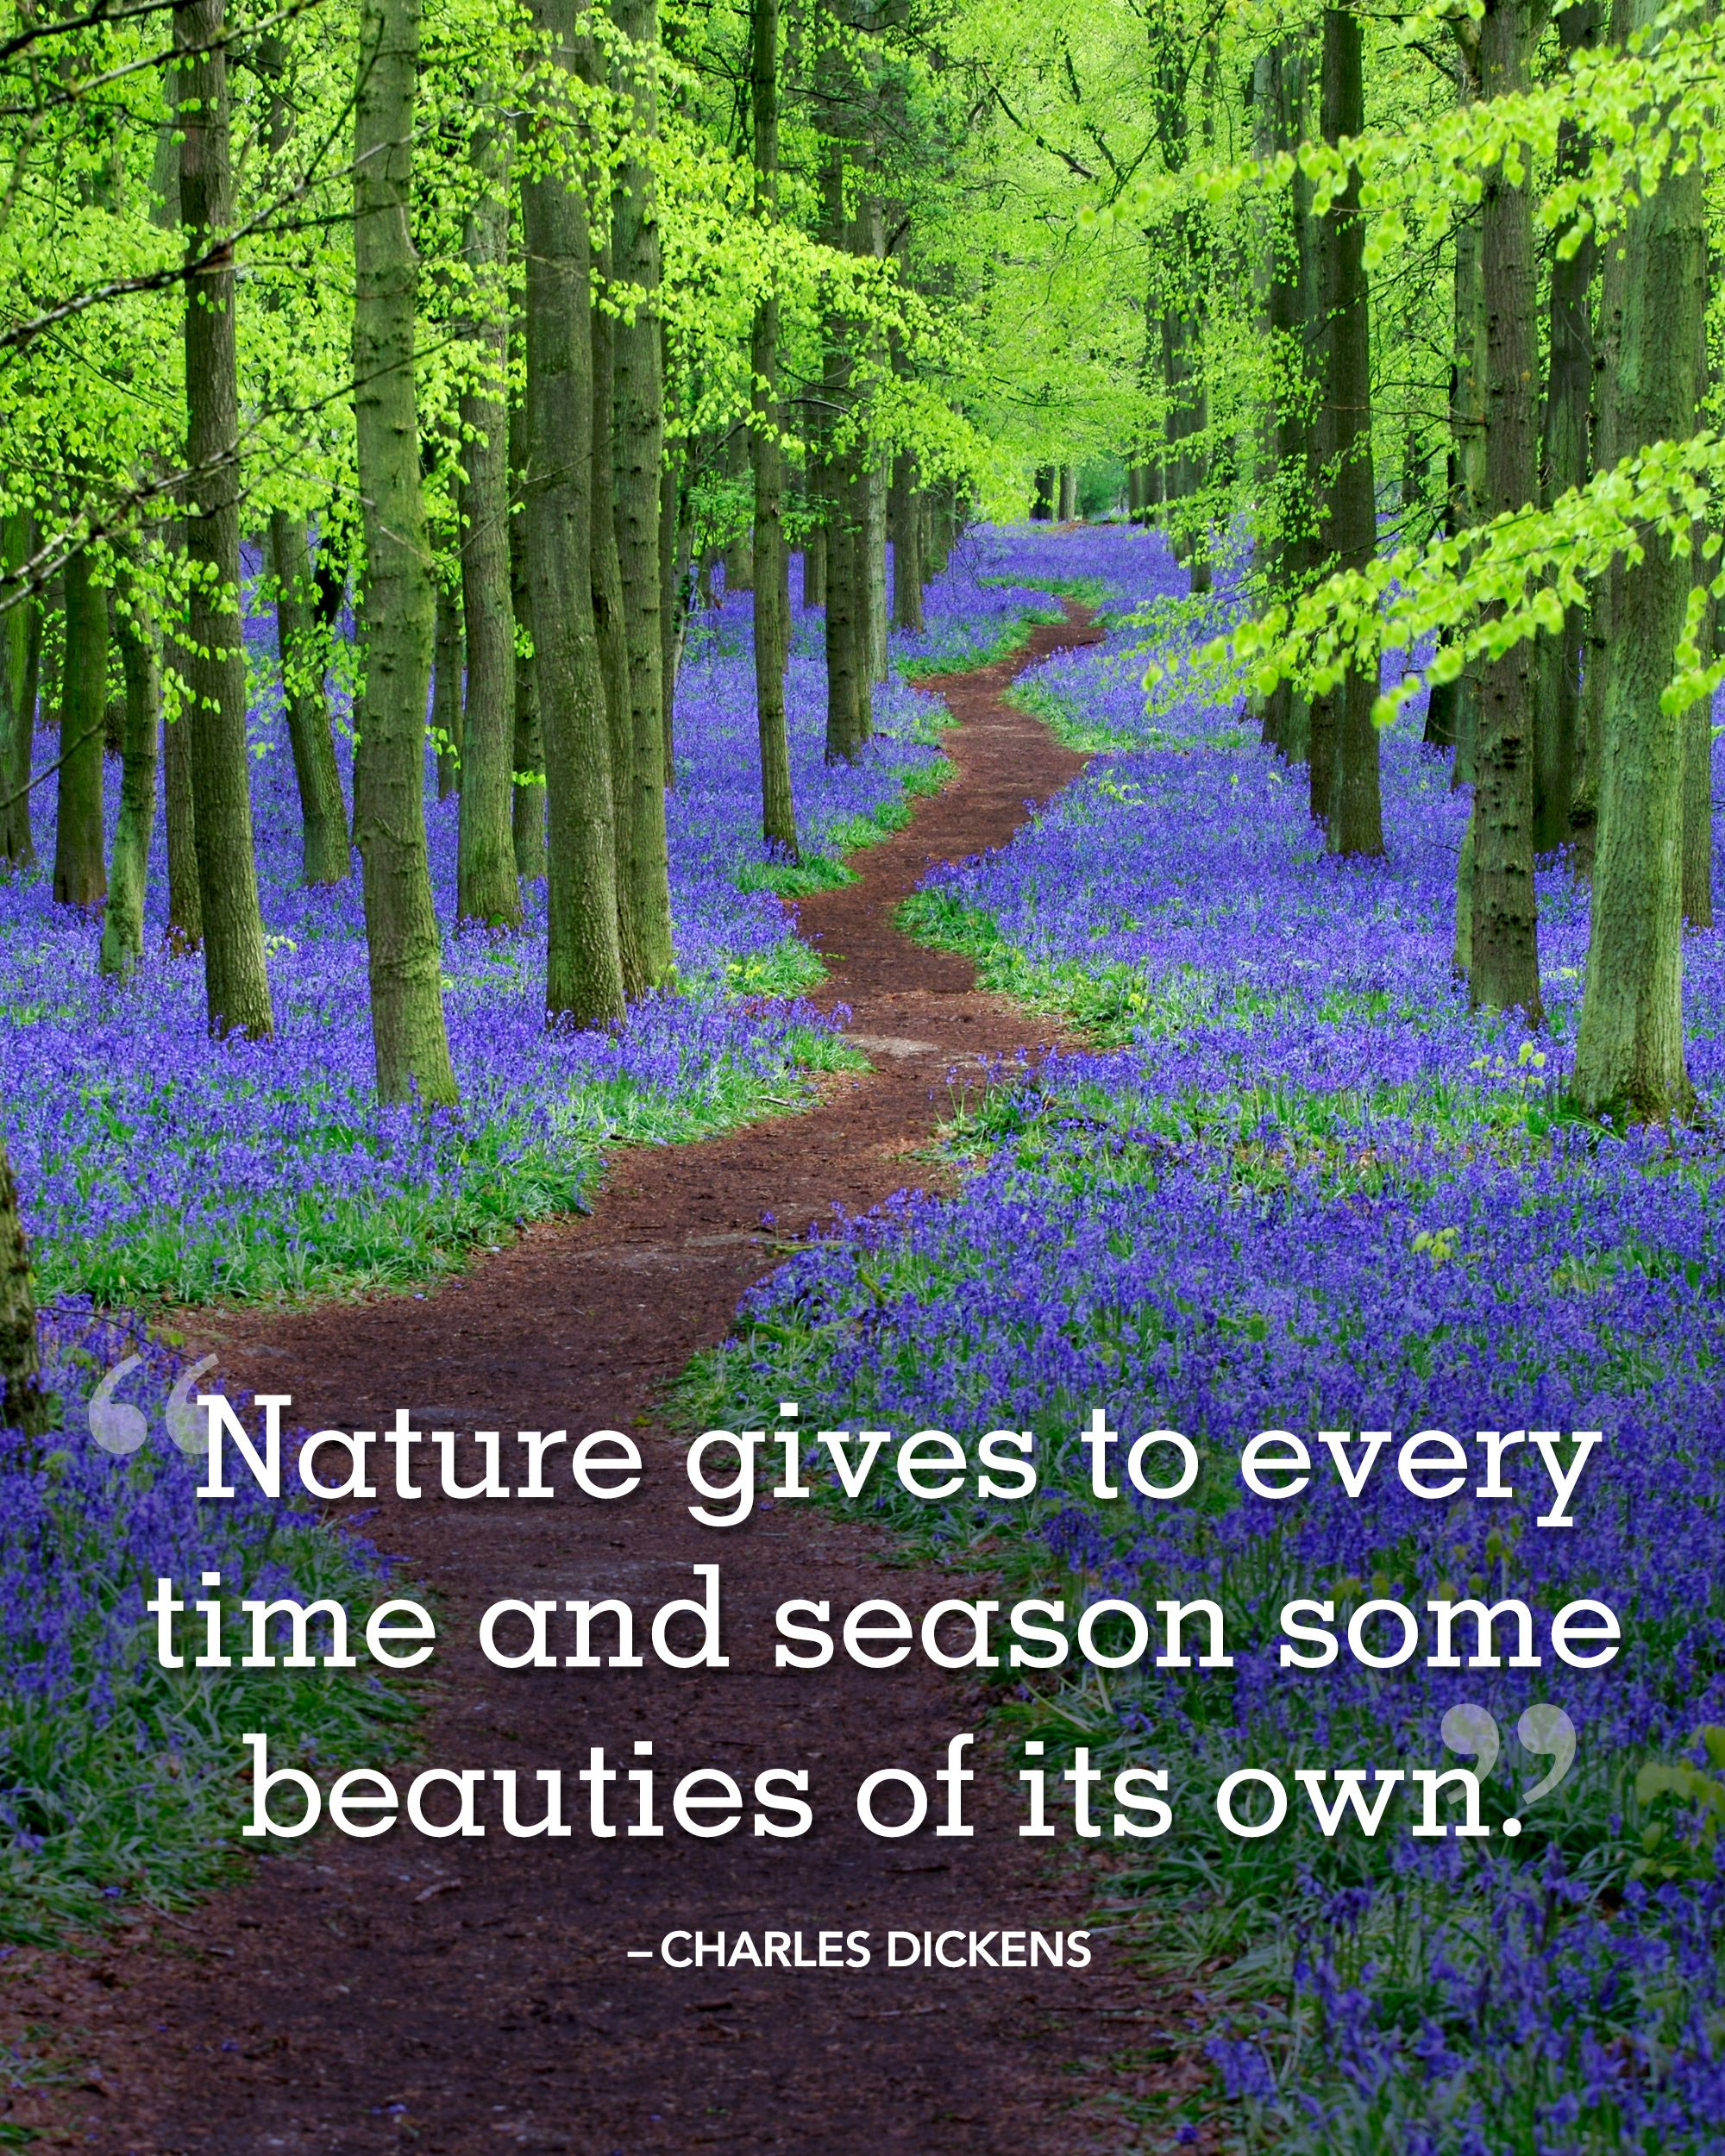 Short Quotes About Nature: 25 Spring Quotes To Welcome The Season Of Renewal